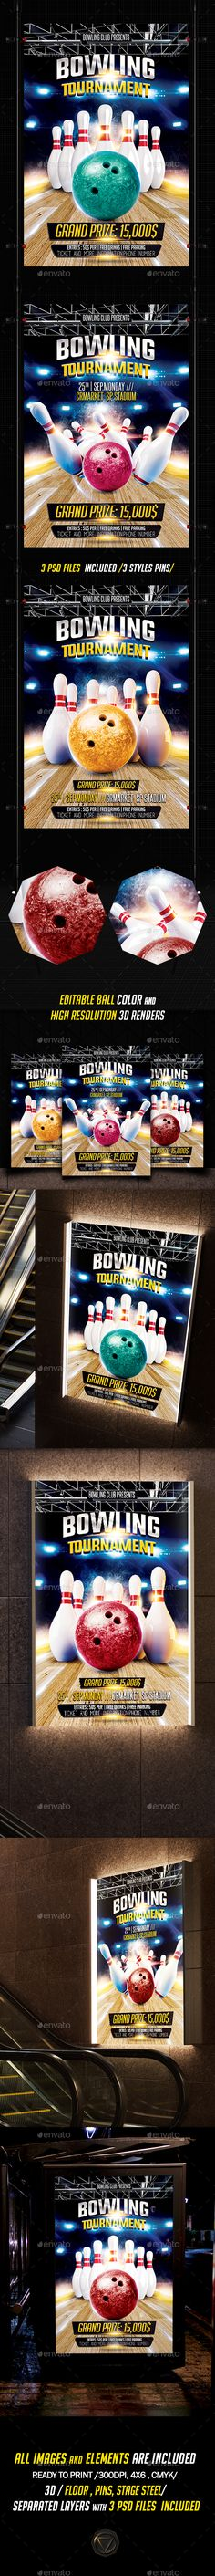 Bowling Night Flyer Template V2 On Behance | Marketing Ideas